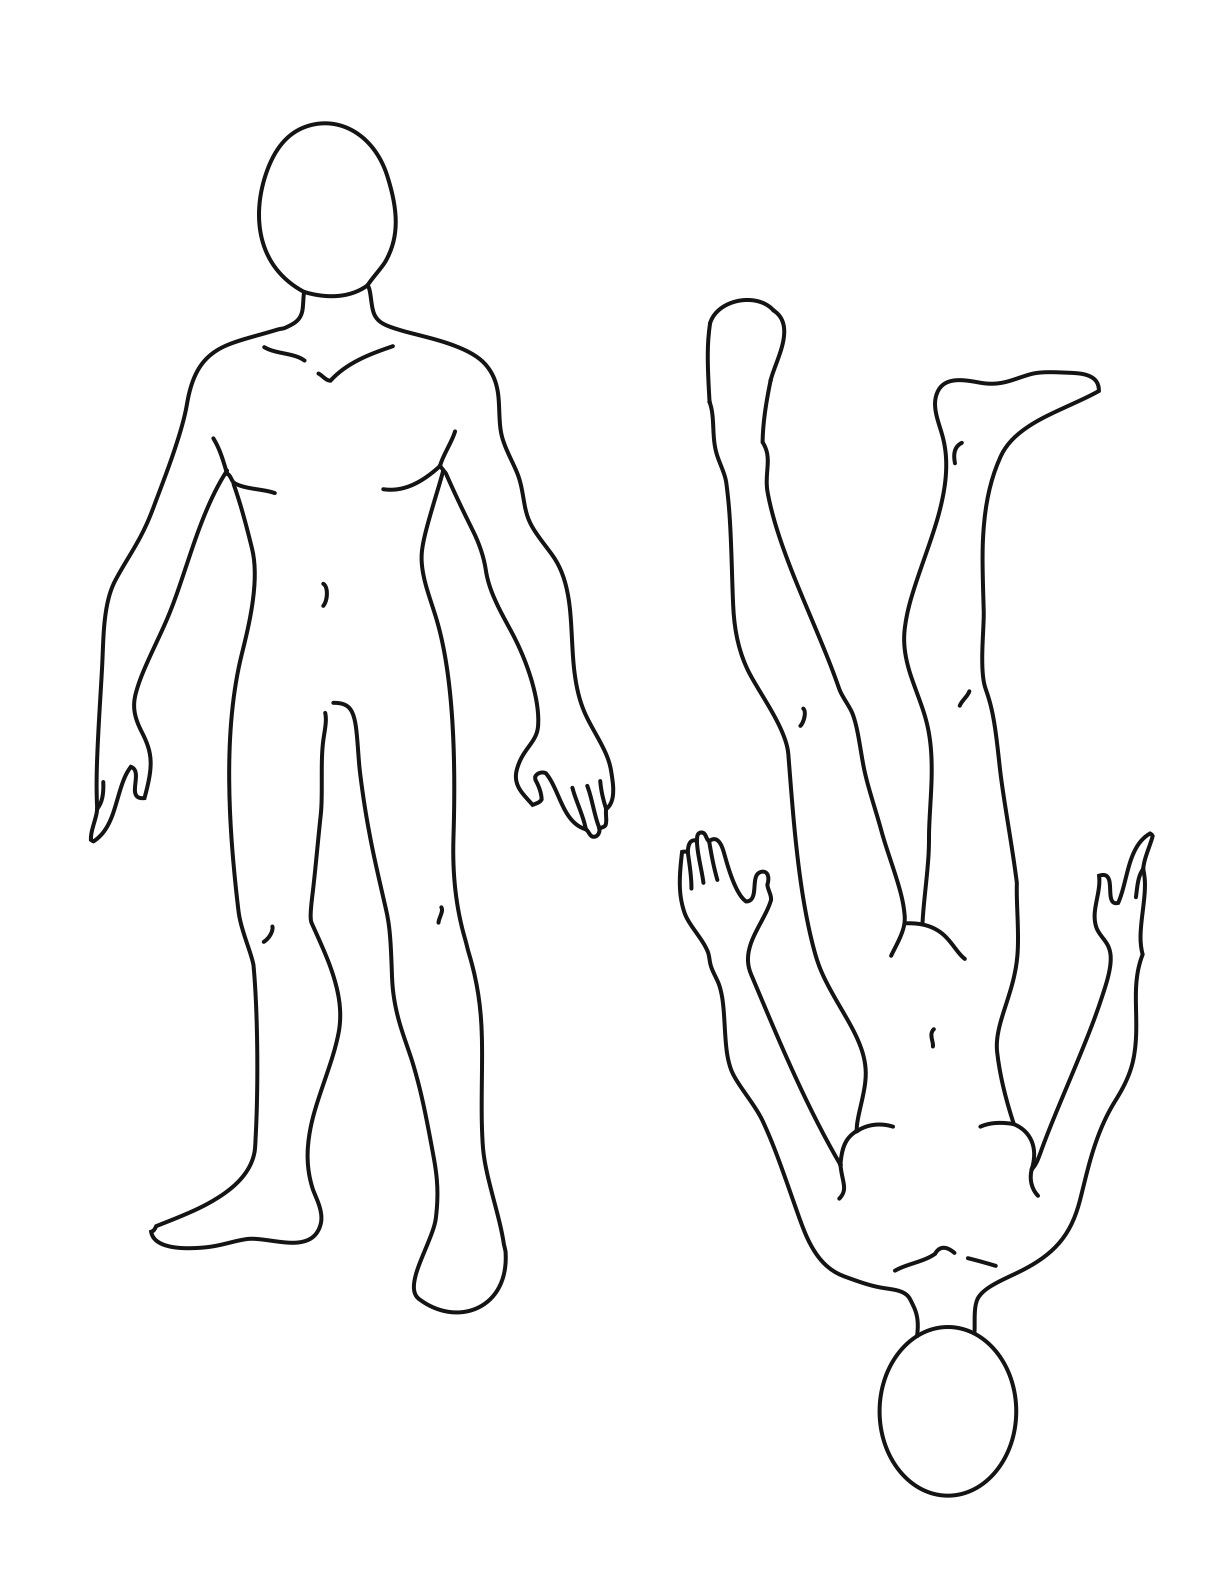 Human body outline printable cliparts pin figure drawing poses male cake on pinterest pronofoot35fo Choice Image